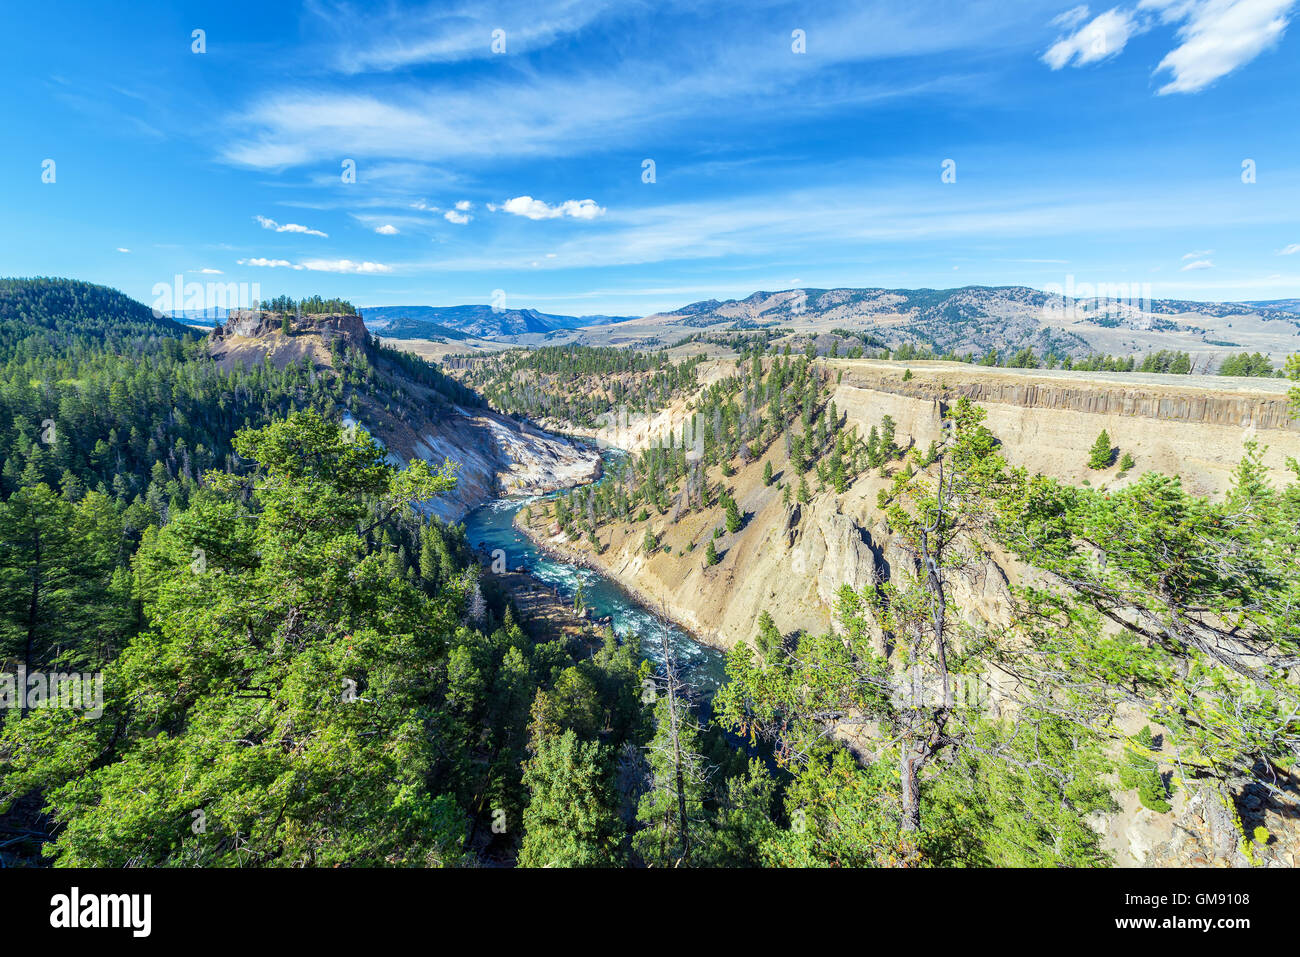 Landscape view of a canyon and the Yellowstone River near Tower Fall in Yellowstone National Park Stock Photo